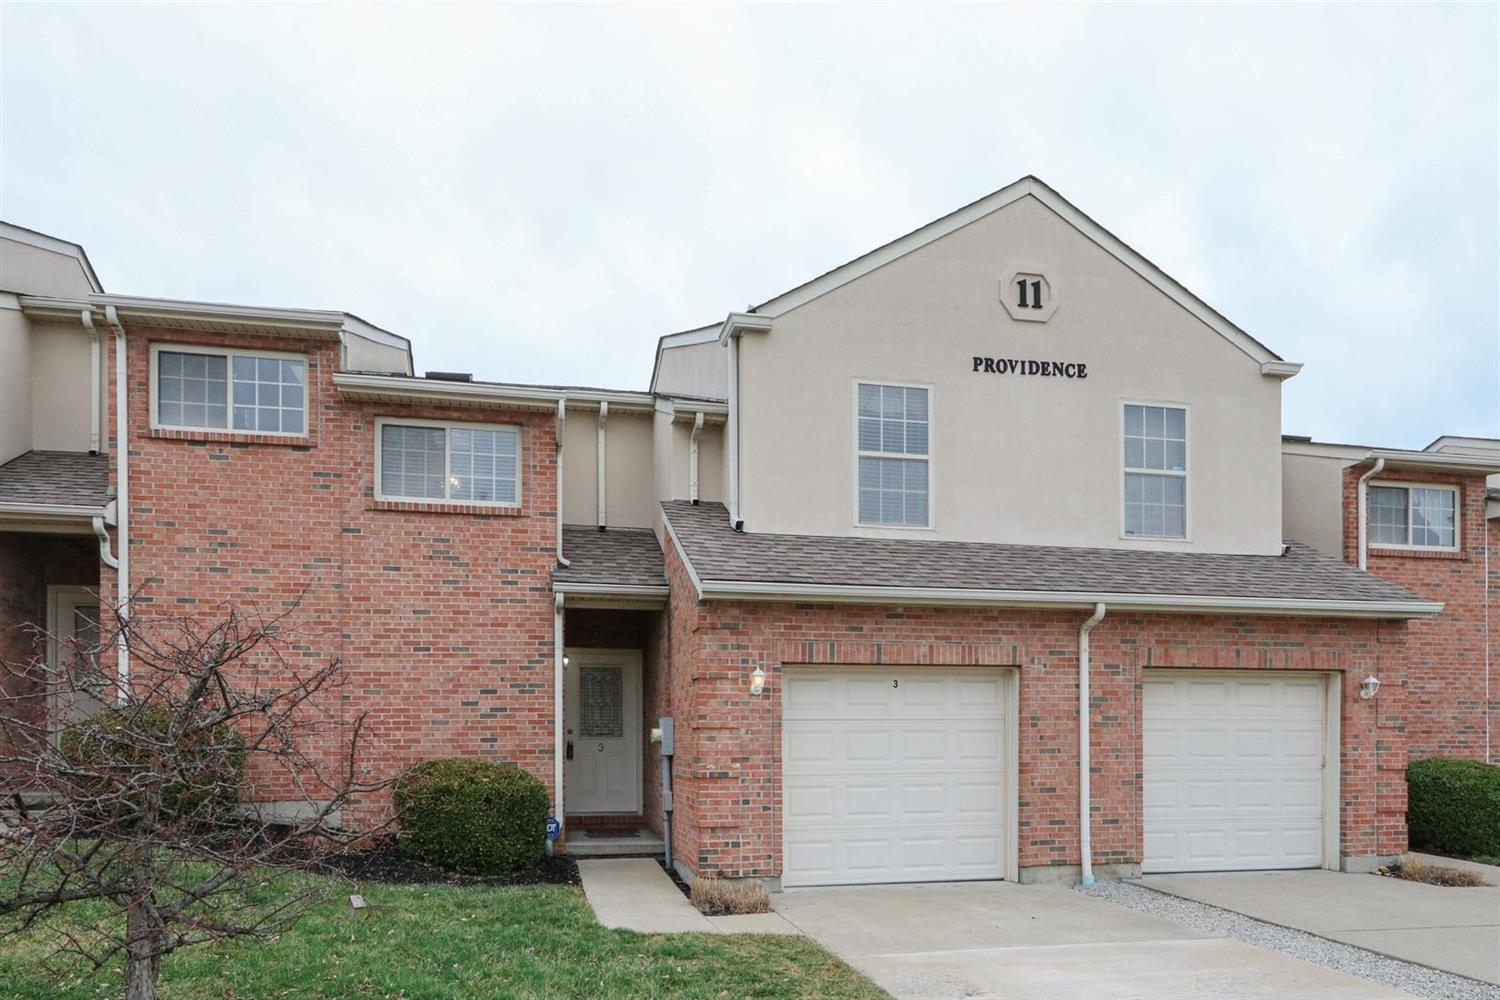 Property for sale at 11 Providence Drive Unit: 3, Fairfield,  Ohio 45014